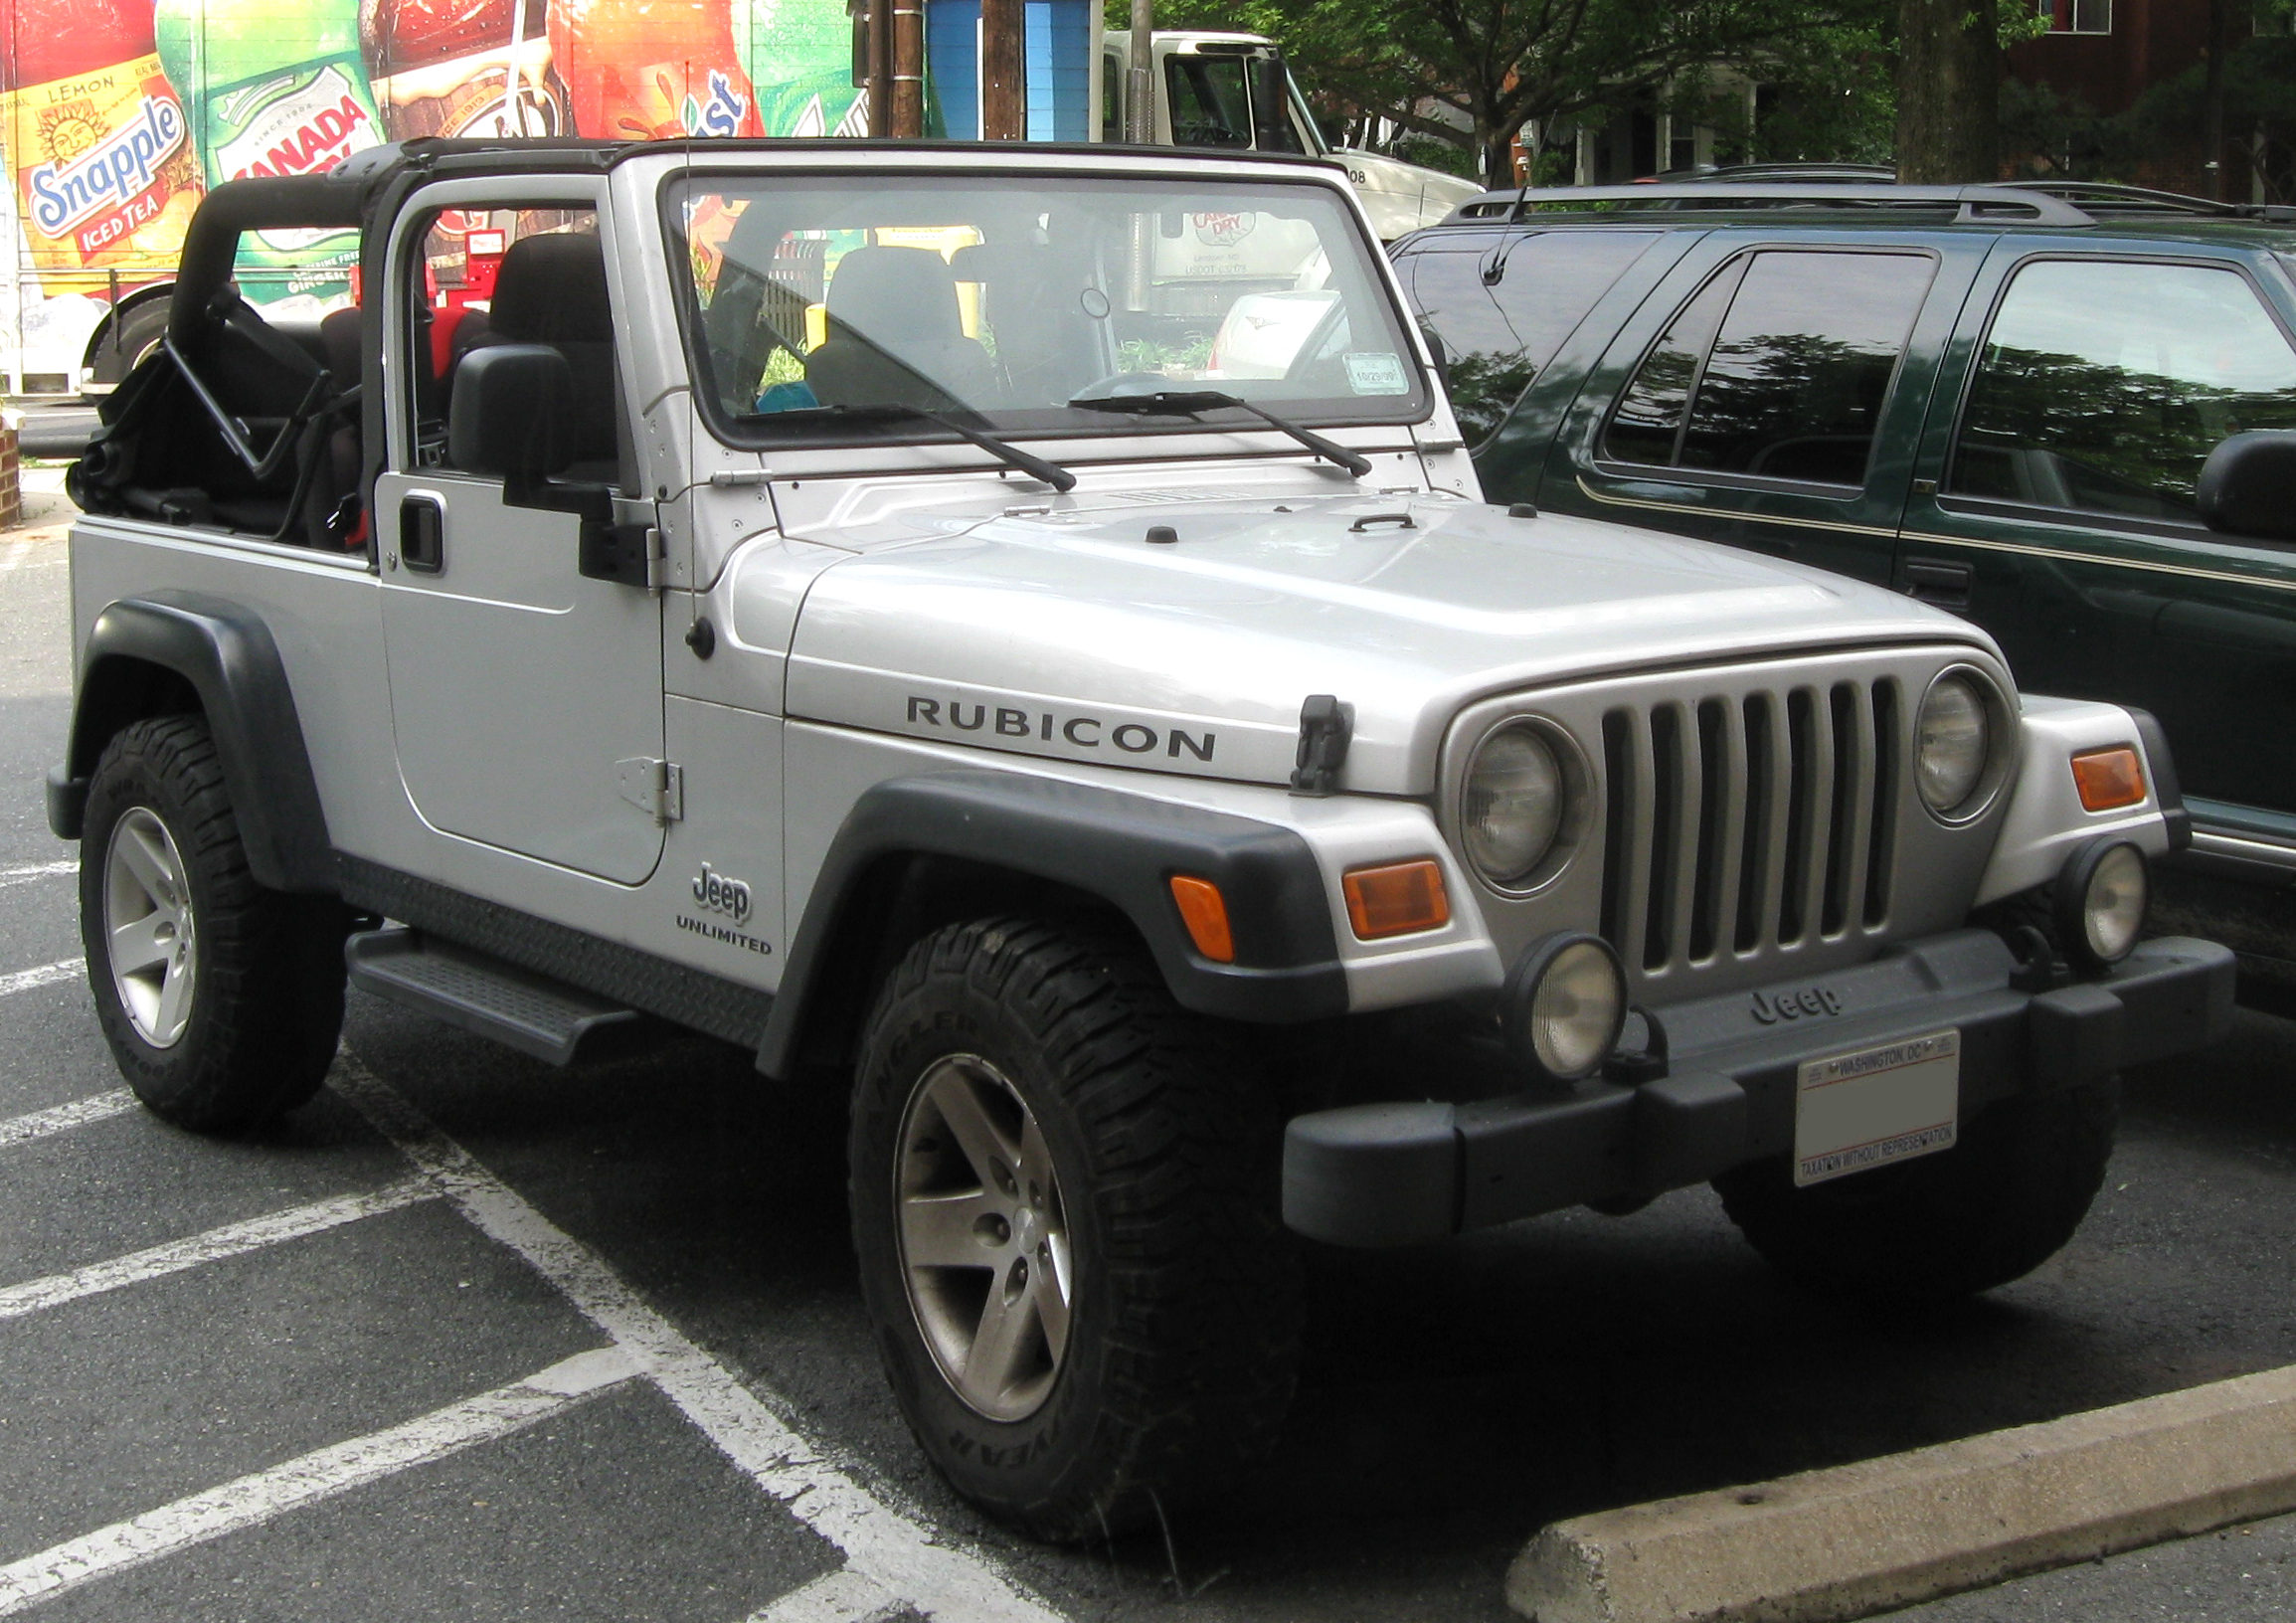 Jeep Wrangler Wiki >> File:1st Jeep Wrangler Unlimited Rubicon.jpg - Wikimedia Commons